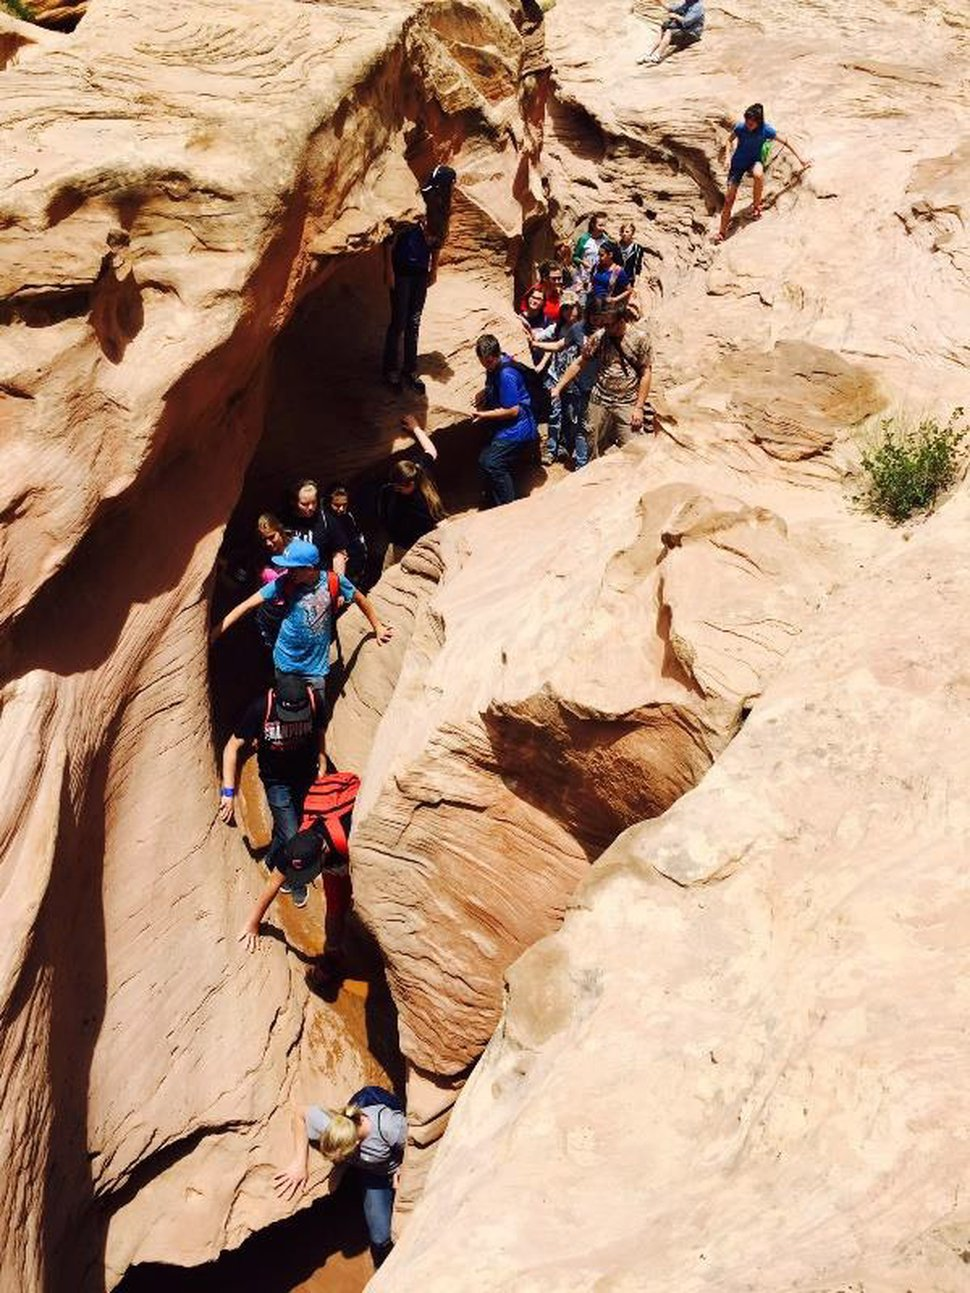 (Photo courtesy of Bureau of Land Management) Hikers crowd the narrow slots of Little Wild Horse Canyon in the San Rafael Reef. BLM is developing a recreation management plan for the 200,000-acre Temple Mountain Area.